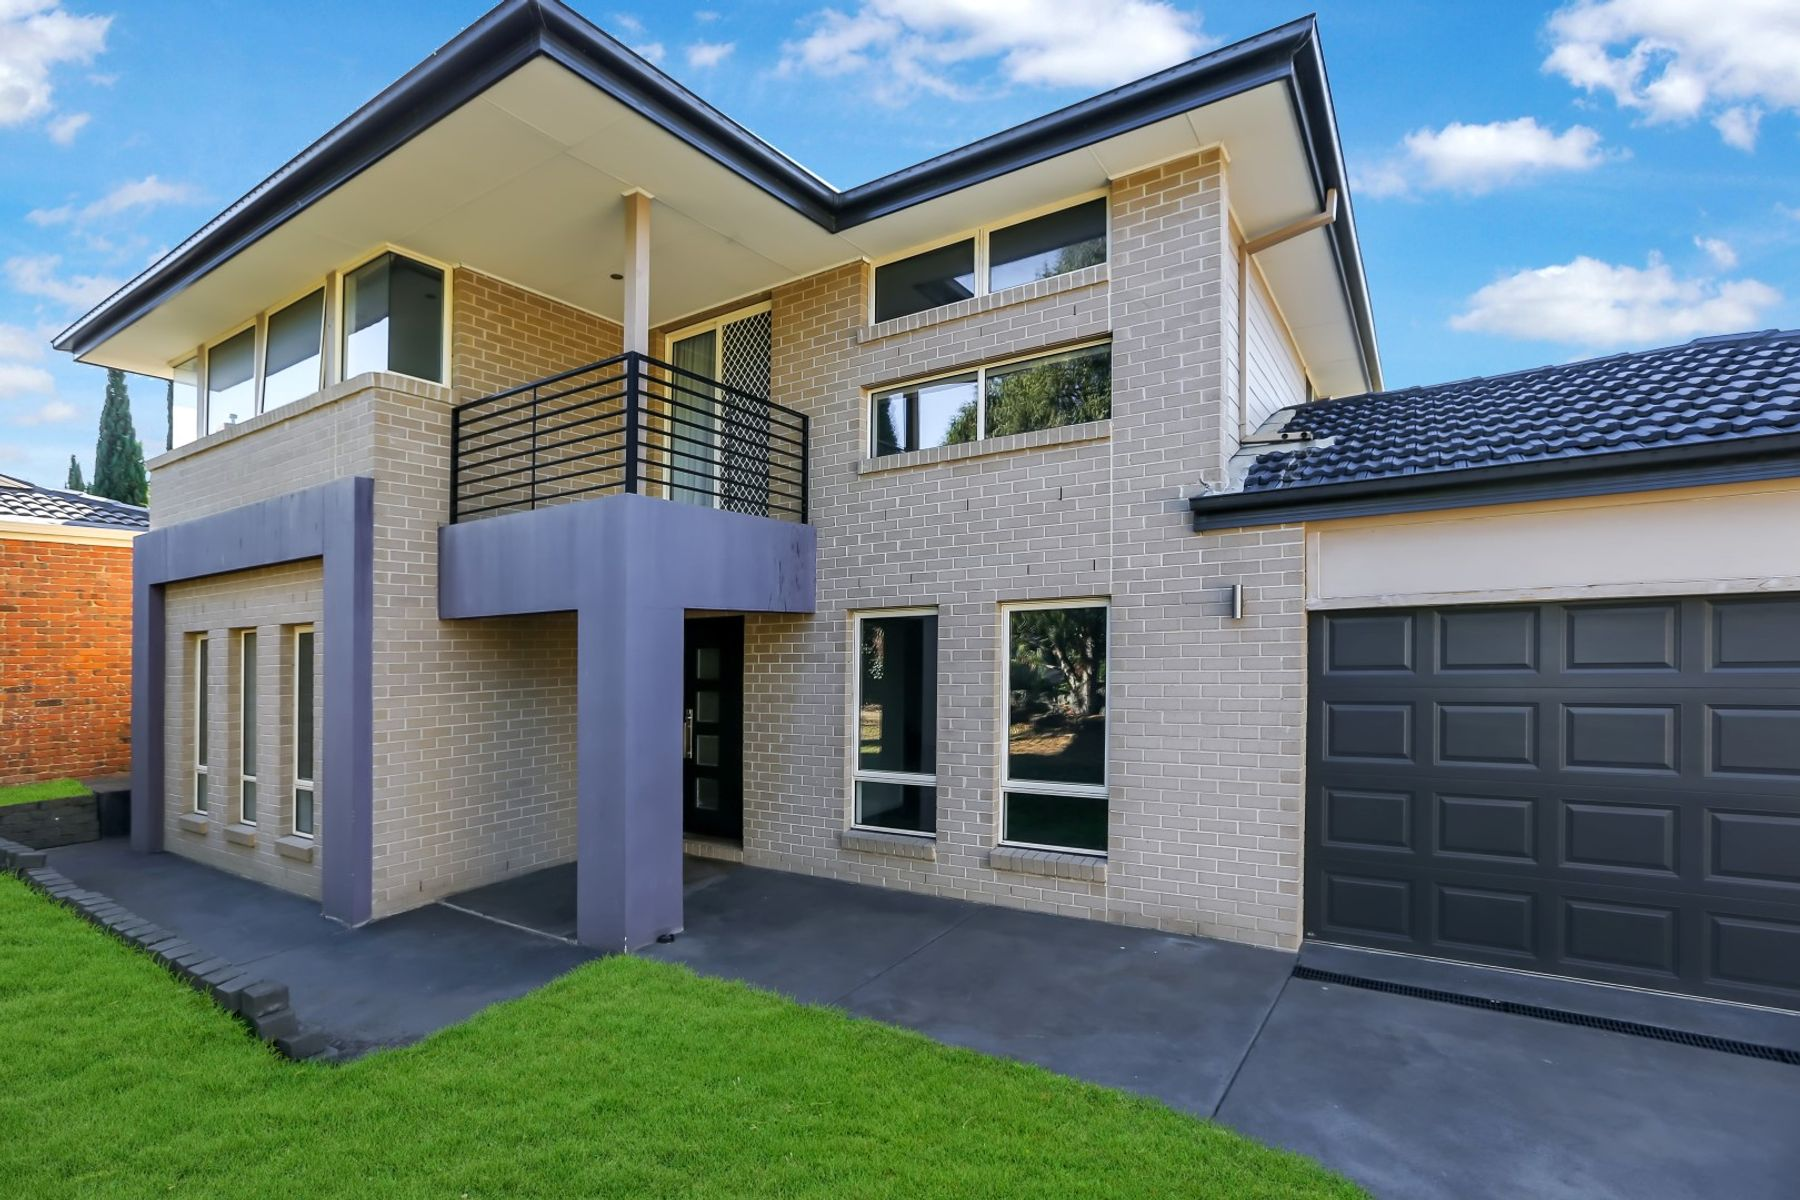 1 Lamont Court, Wantirna South, VIC 3152